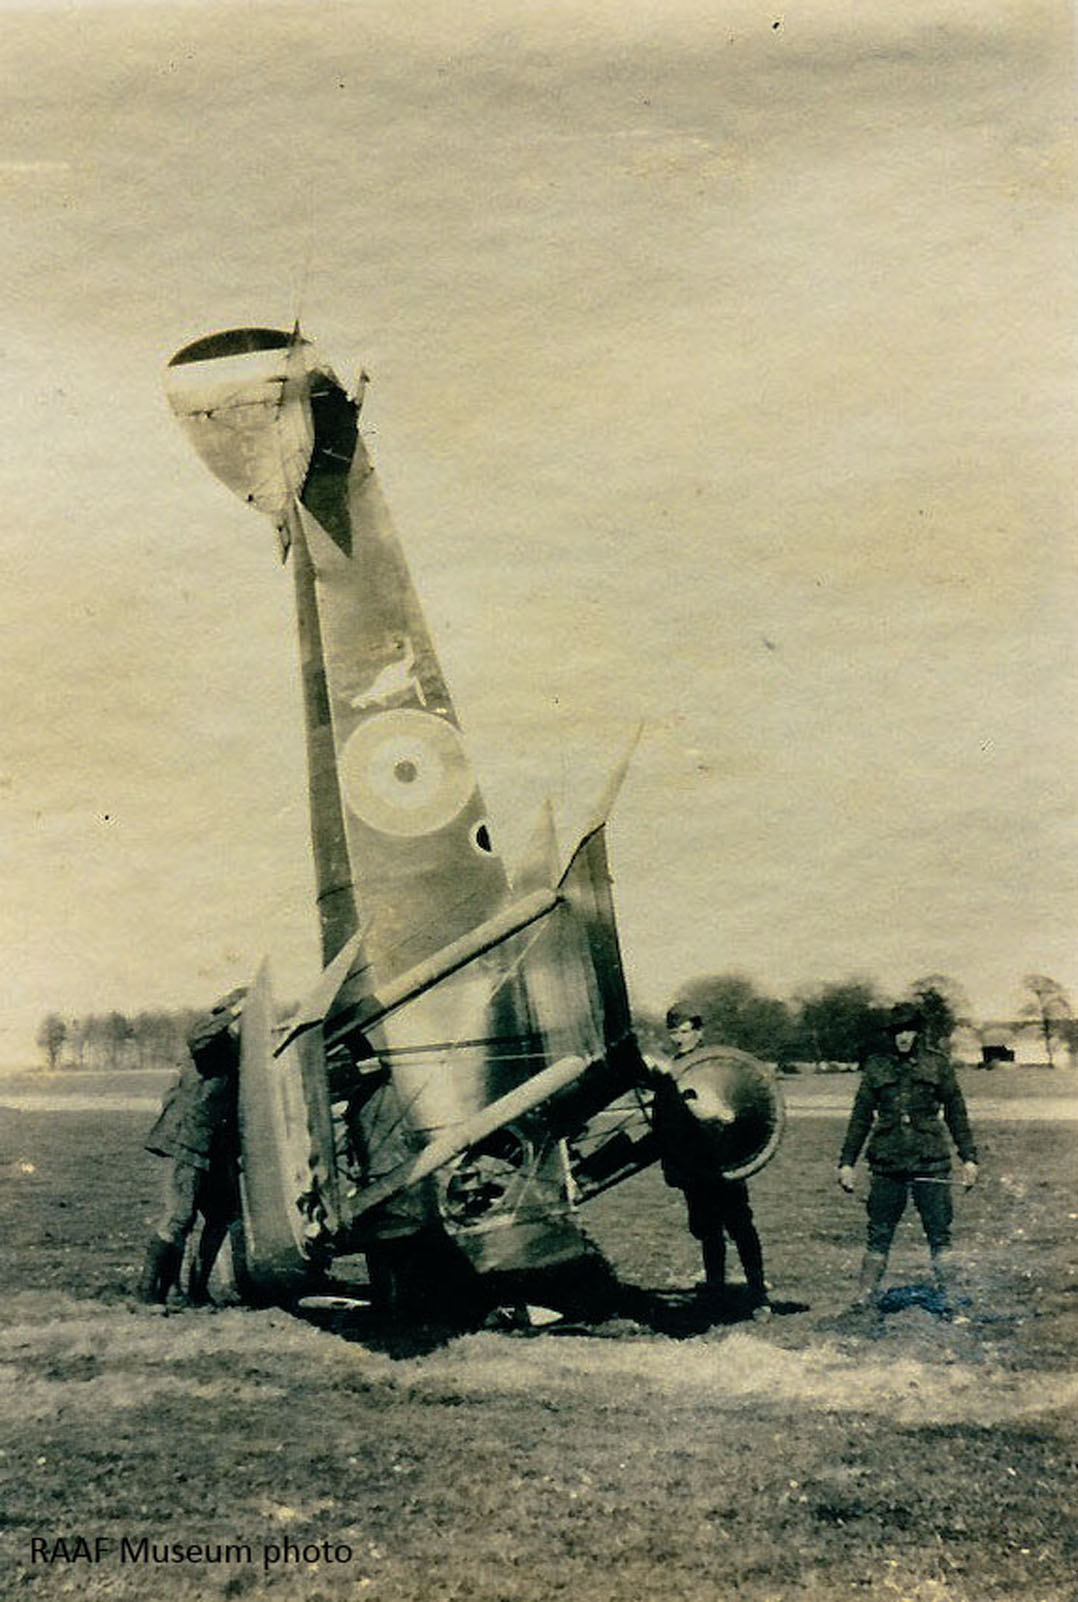 A damaged Australian Sopwith Camel as flown by 4 Sqn AFC (RAAF Museum)